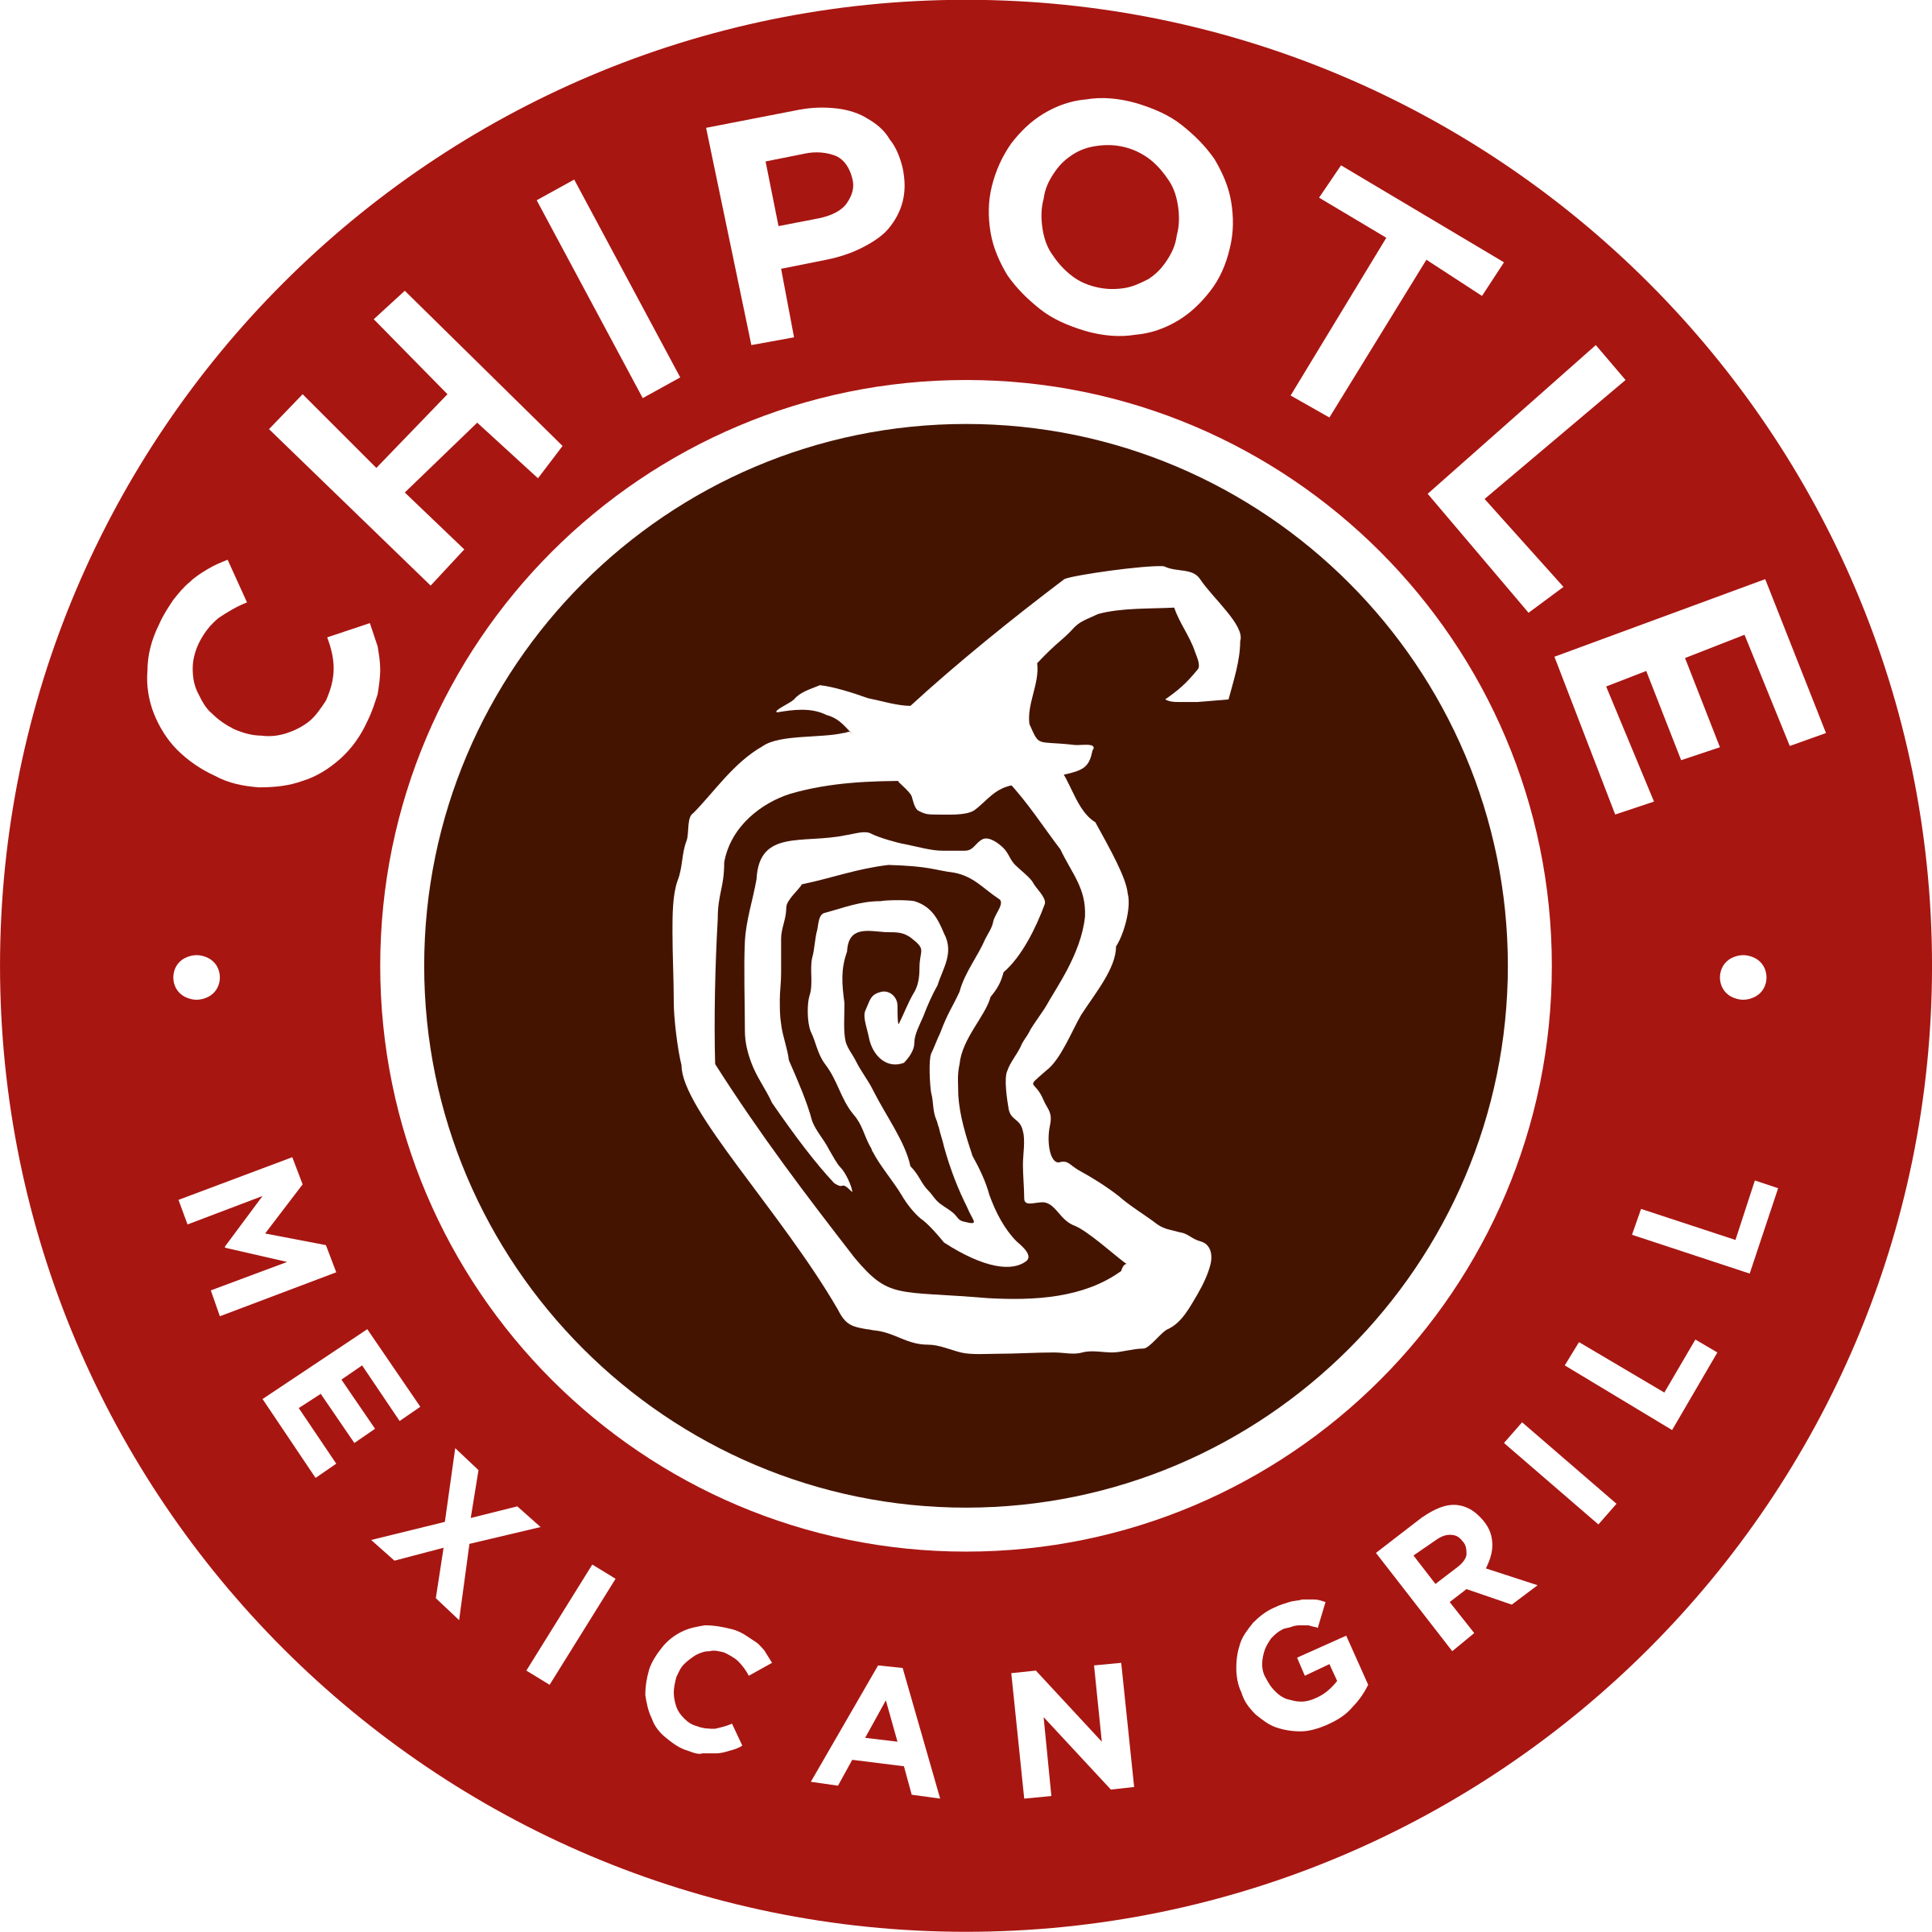 Chipotle Mexican Grill Logo PNG Transparent & SVG Vector.